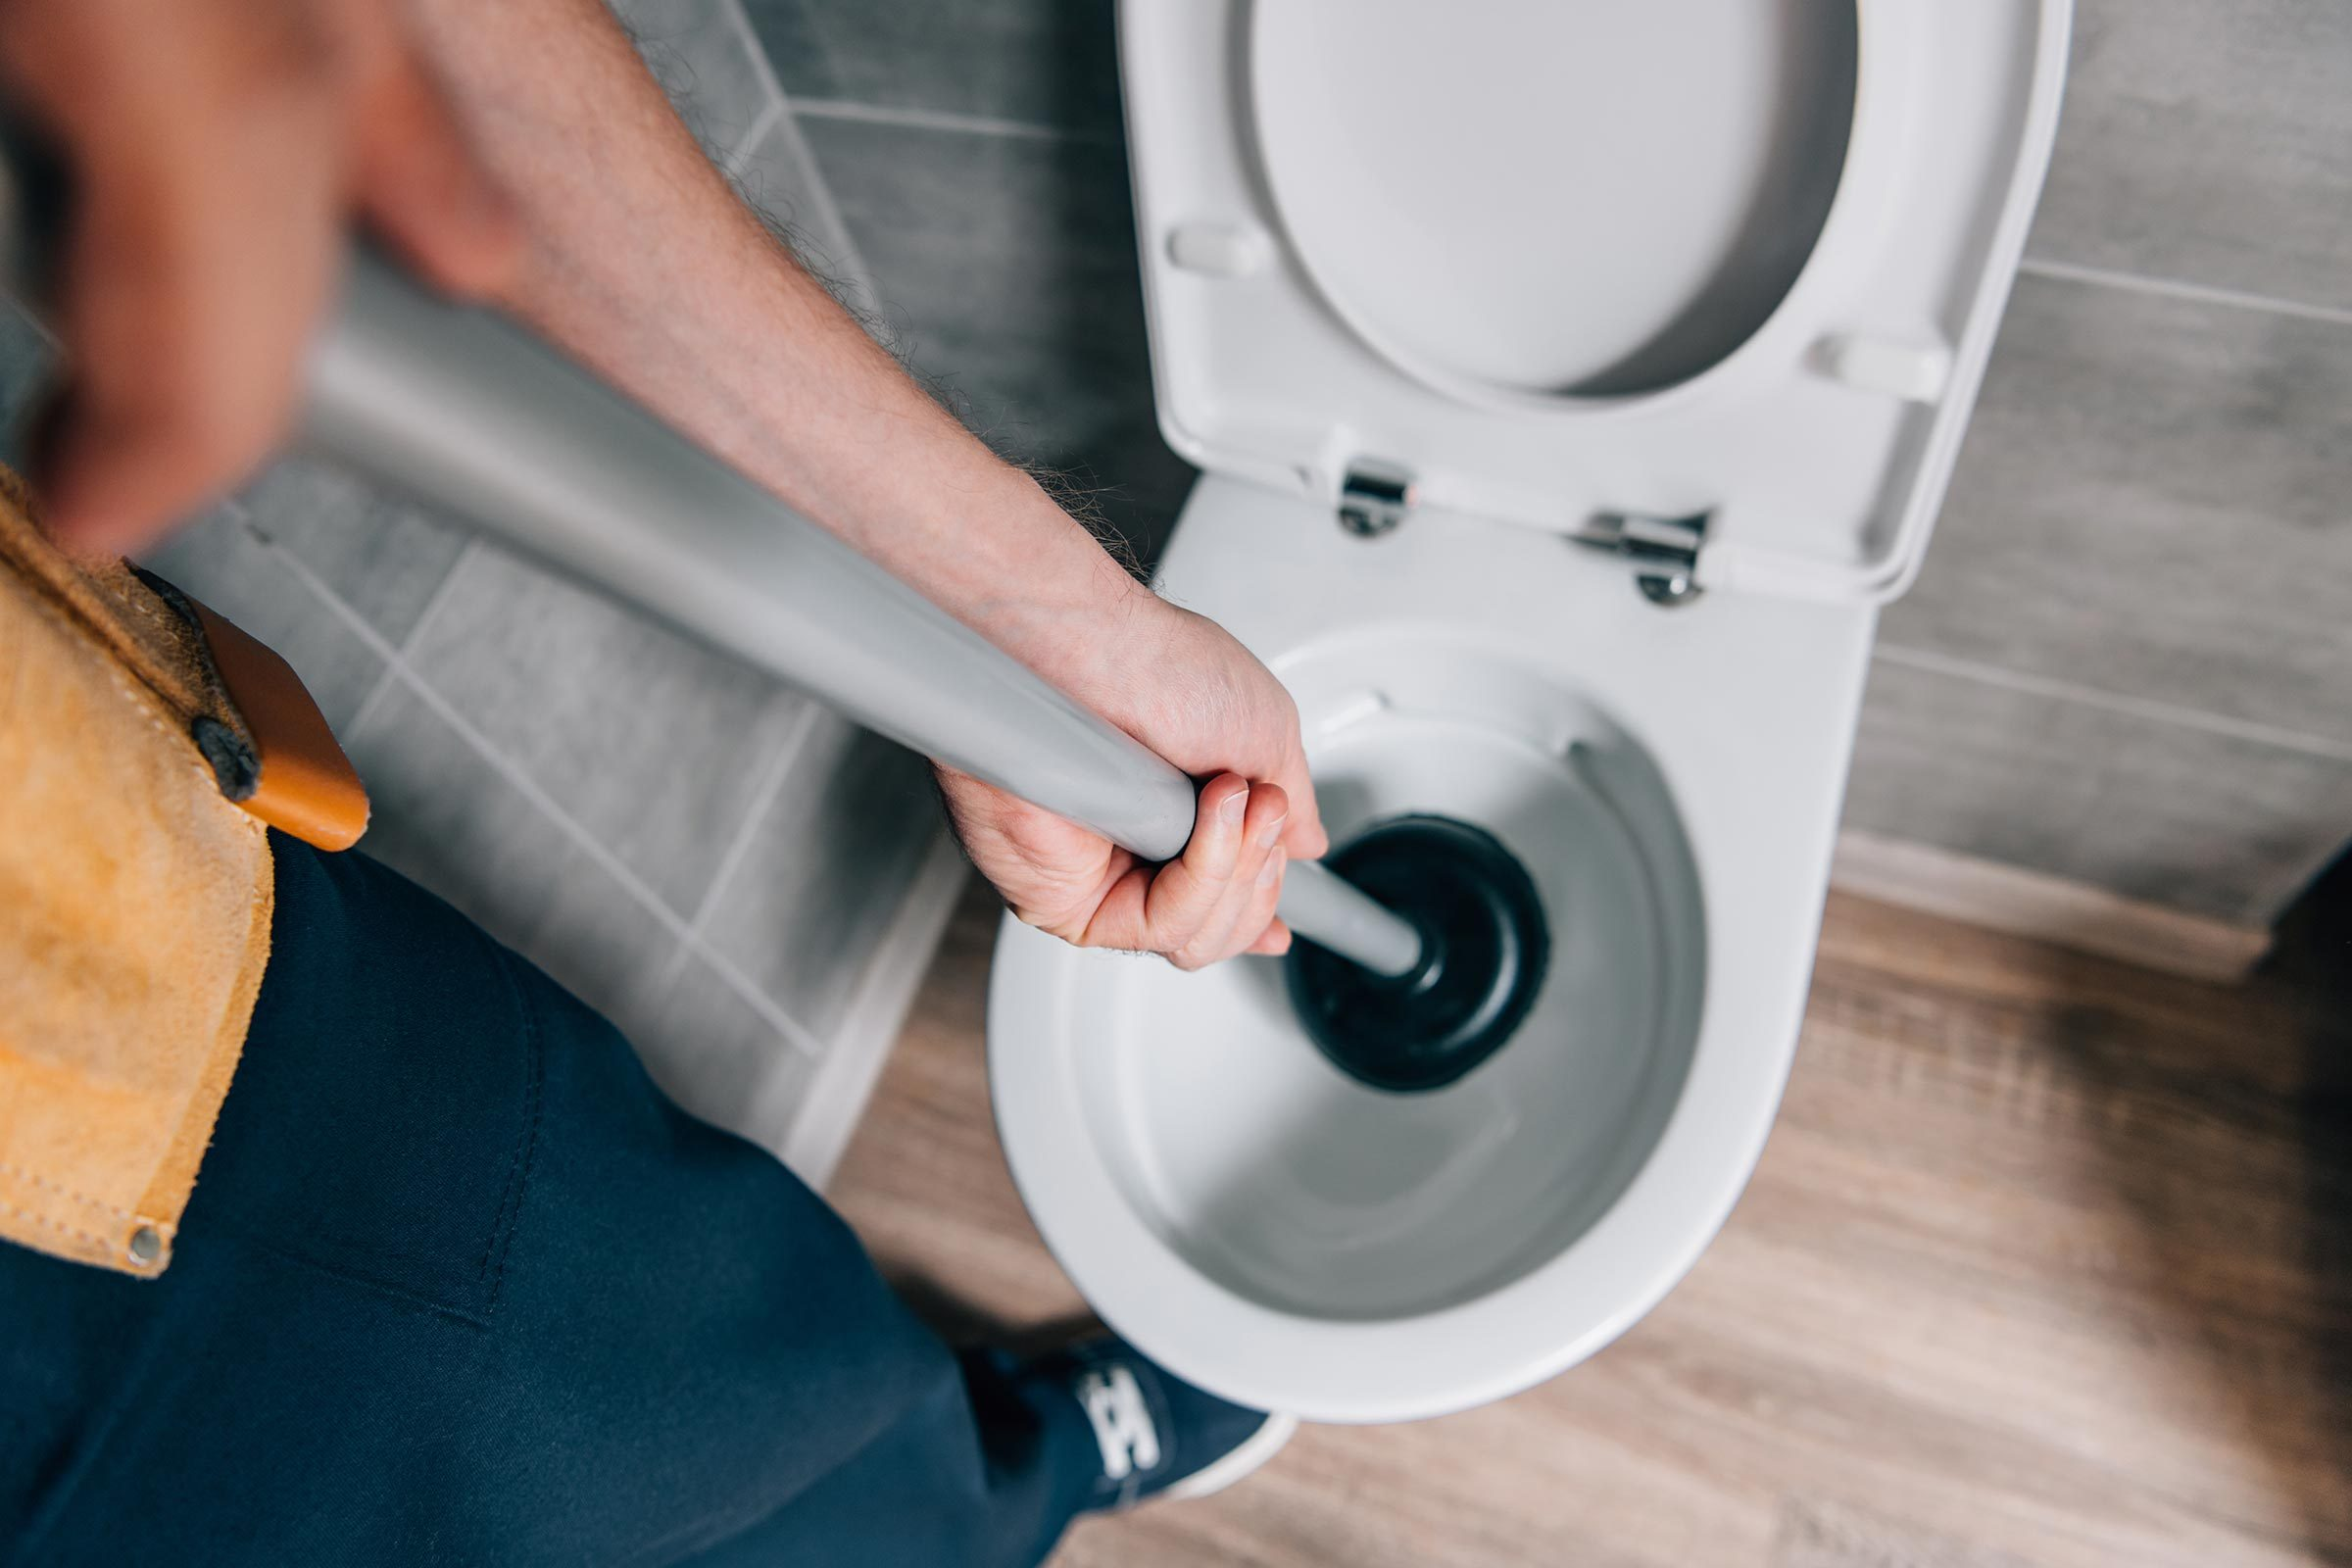 How To Unclog A Toilet Without Plunger Reader S Digest